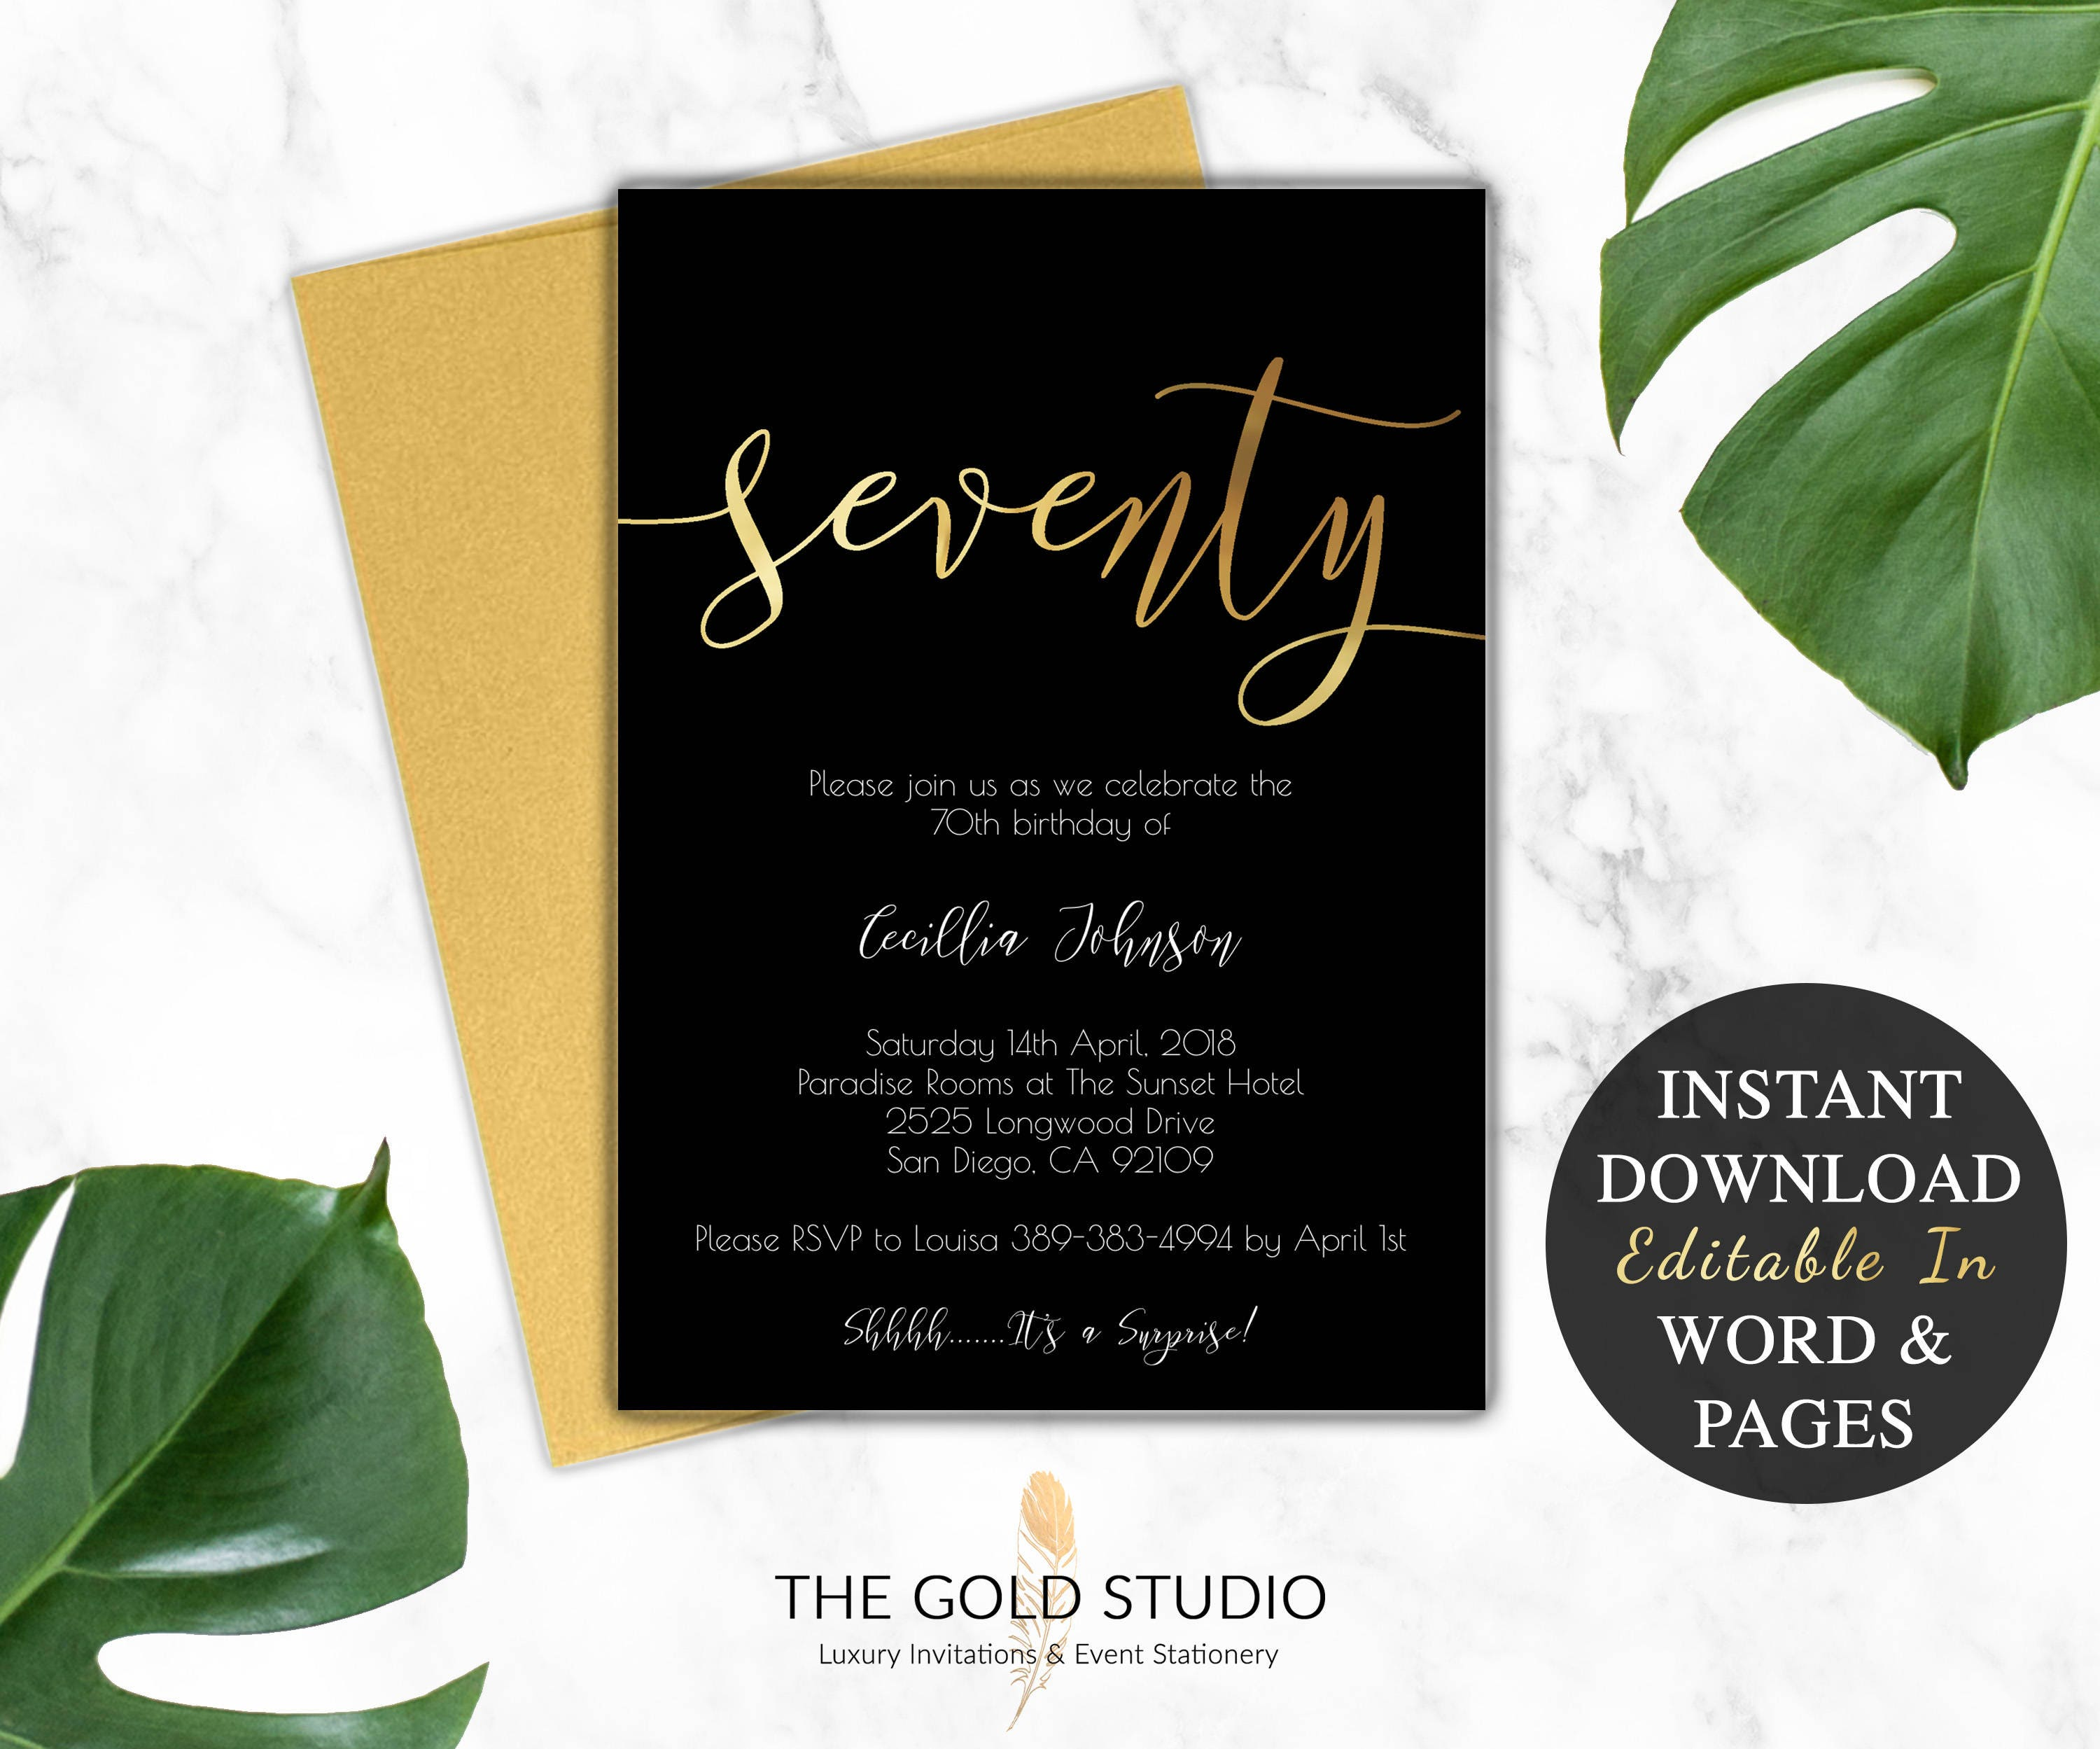 70th birthday invitation instant download diy editable template 70th birthday invitation instant download diy editable template modern black gold print at home birthday party invitation printable filmwisefo